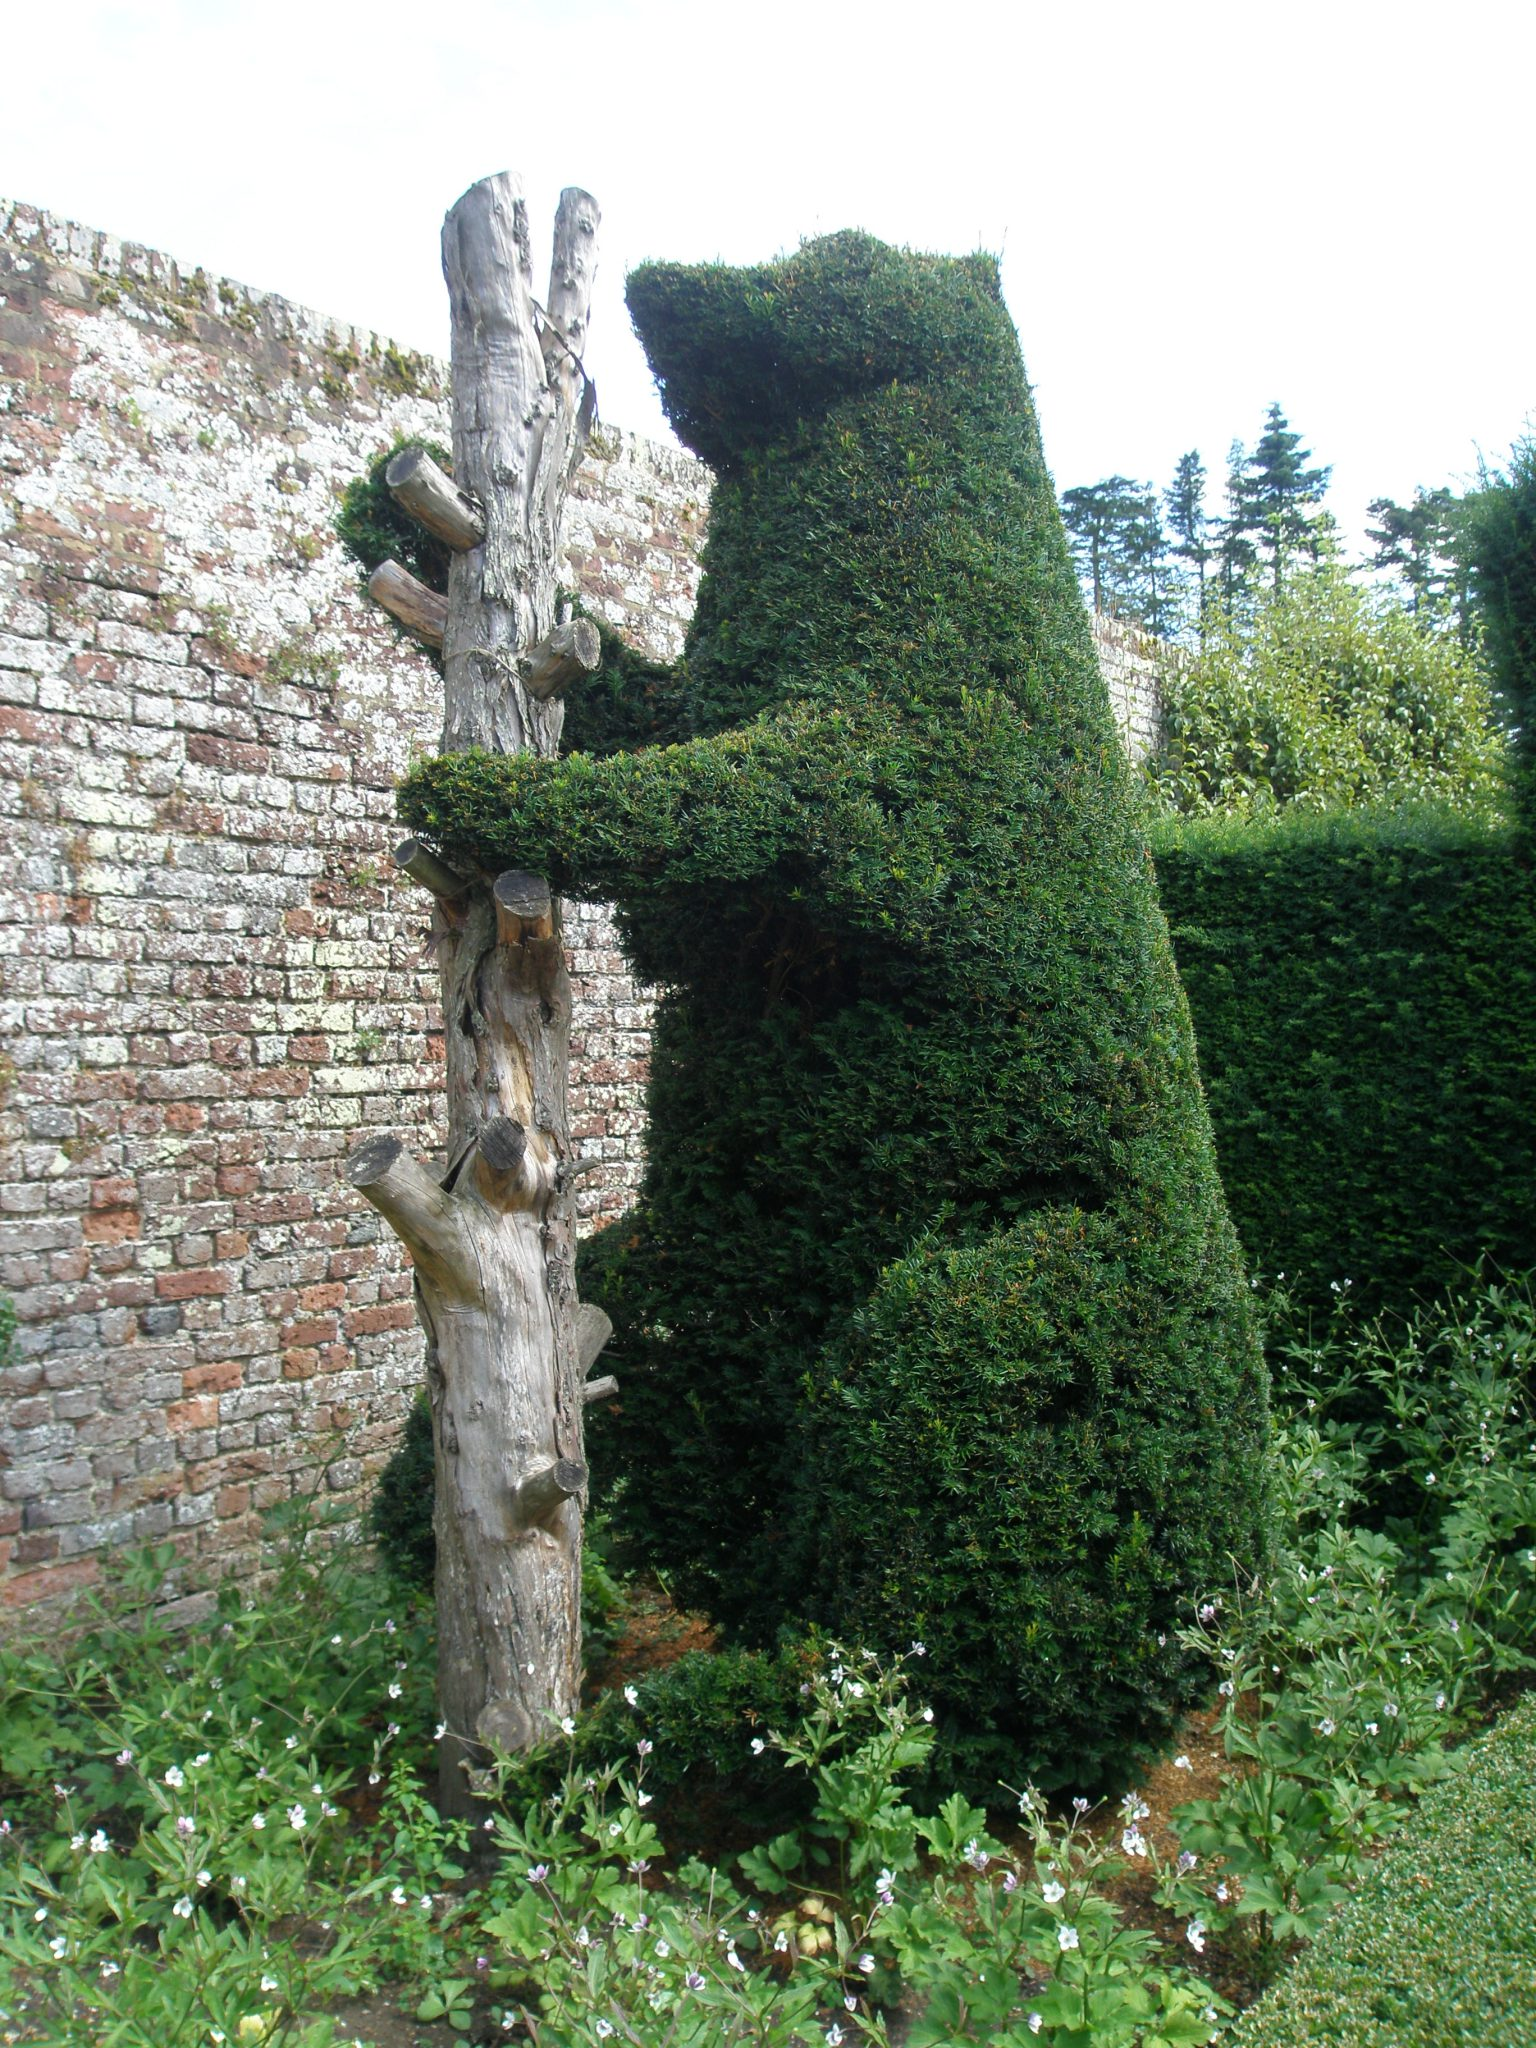 A more successful topiary effort: this one a Bear With Ragged Staff, which is the heraldic symbol of the Dudley family. Sir Henry Sidney married Mary Dudley in the 16th century.